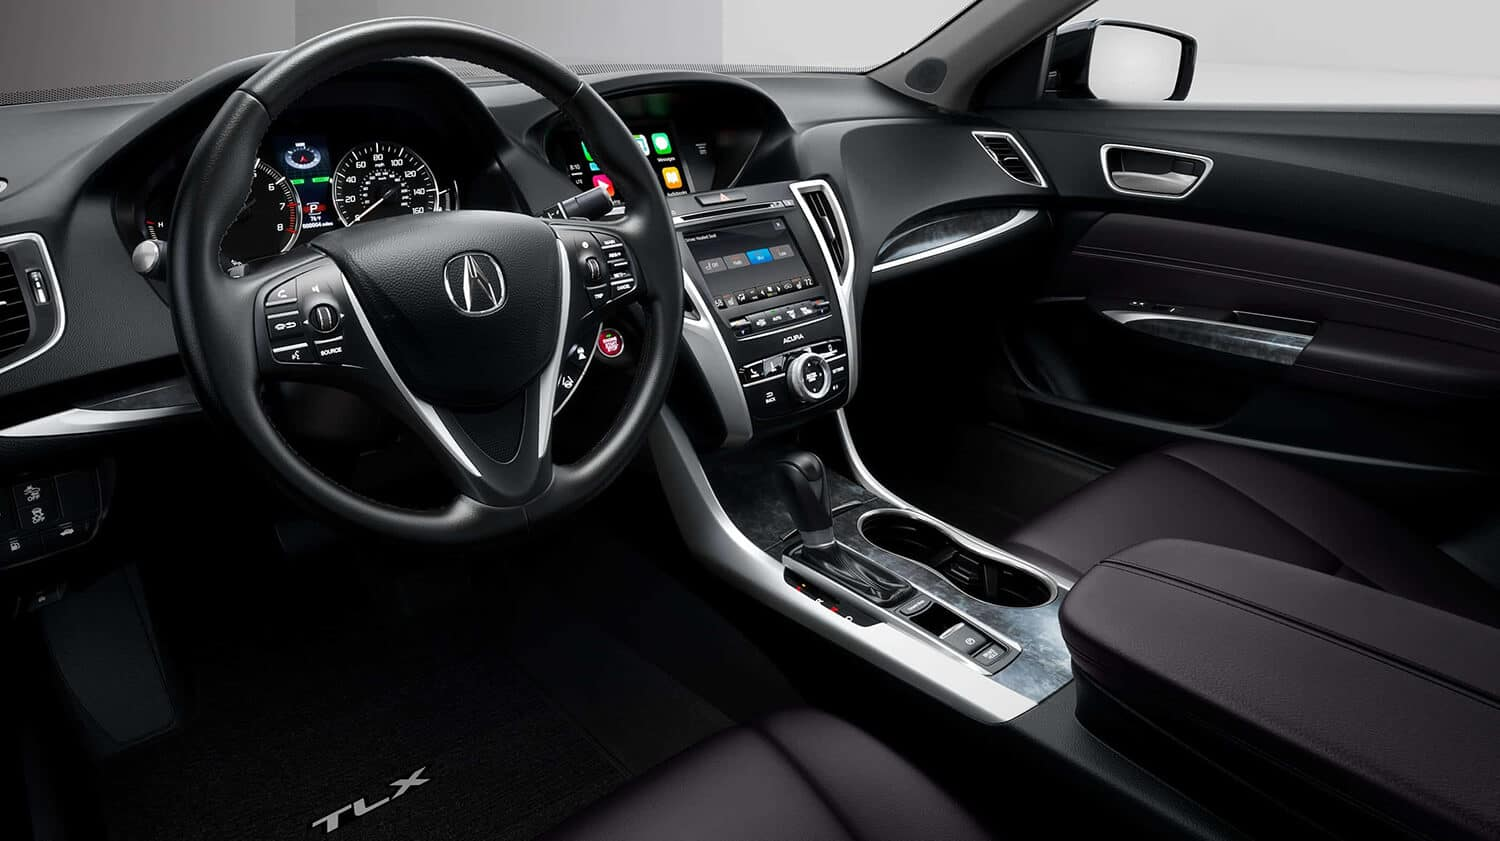 2019 Acura TLX Interior Cockpit Driver Side